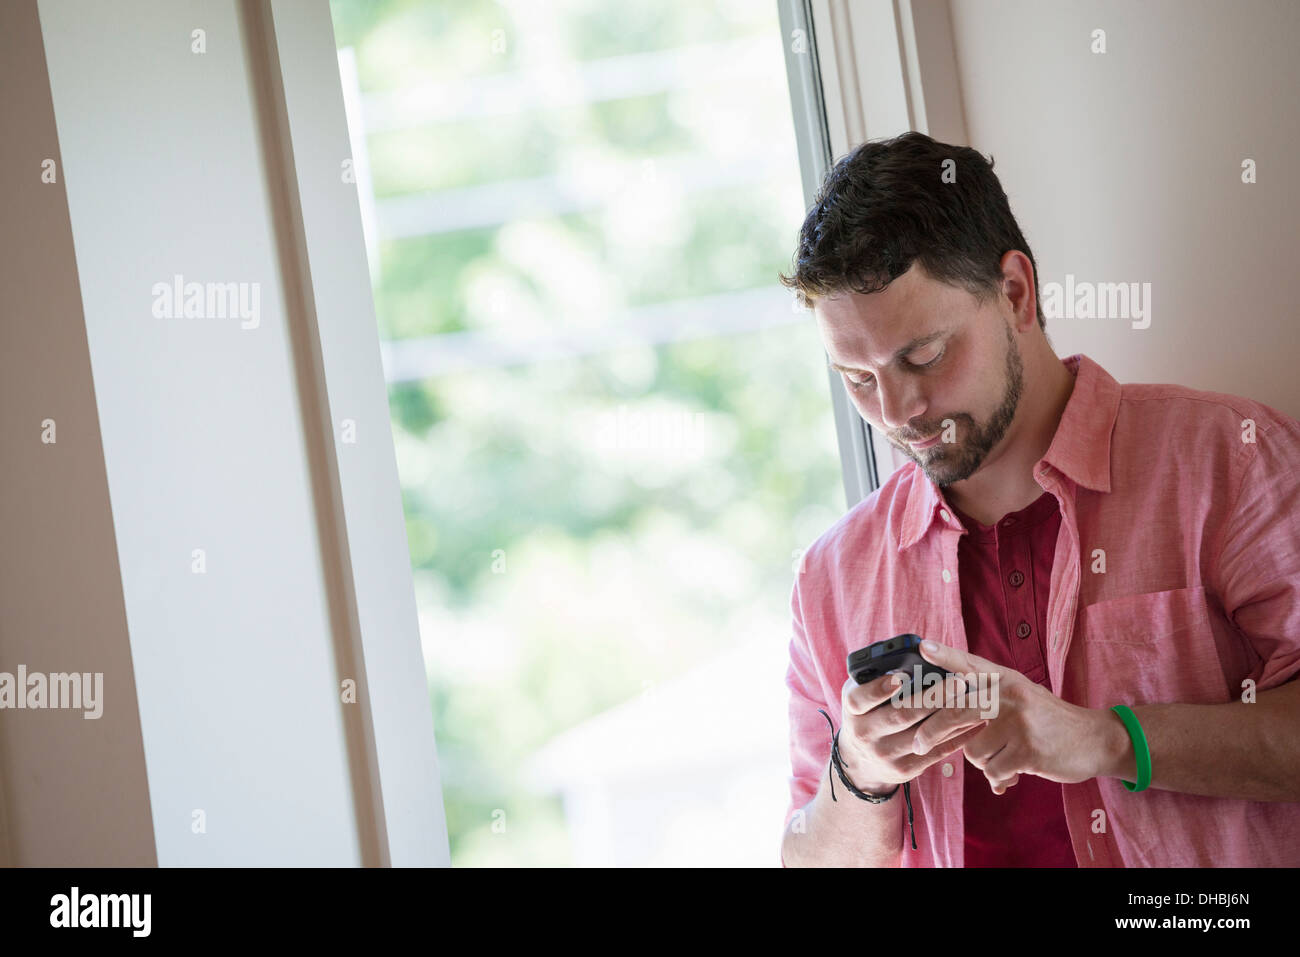 A man standing in a quiet corner of a cafe, using a smart phone. - Stock Image